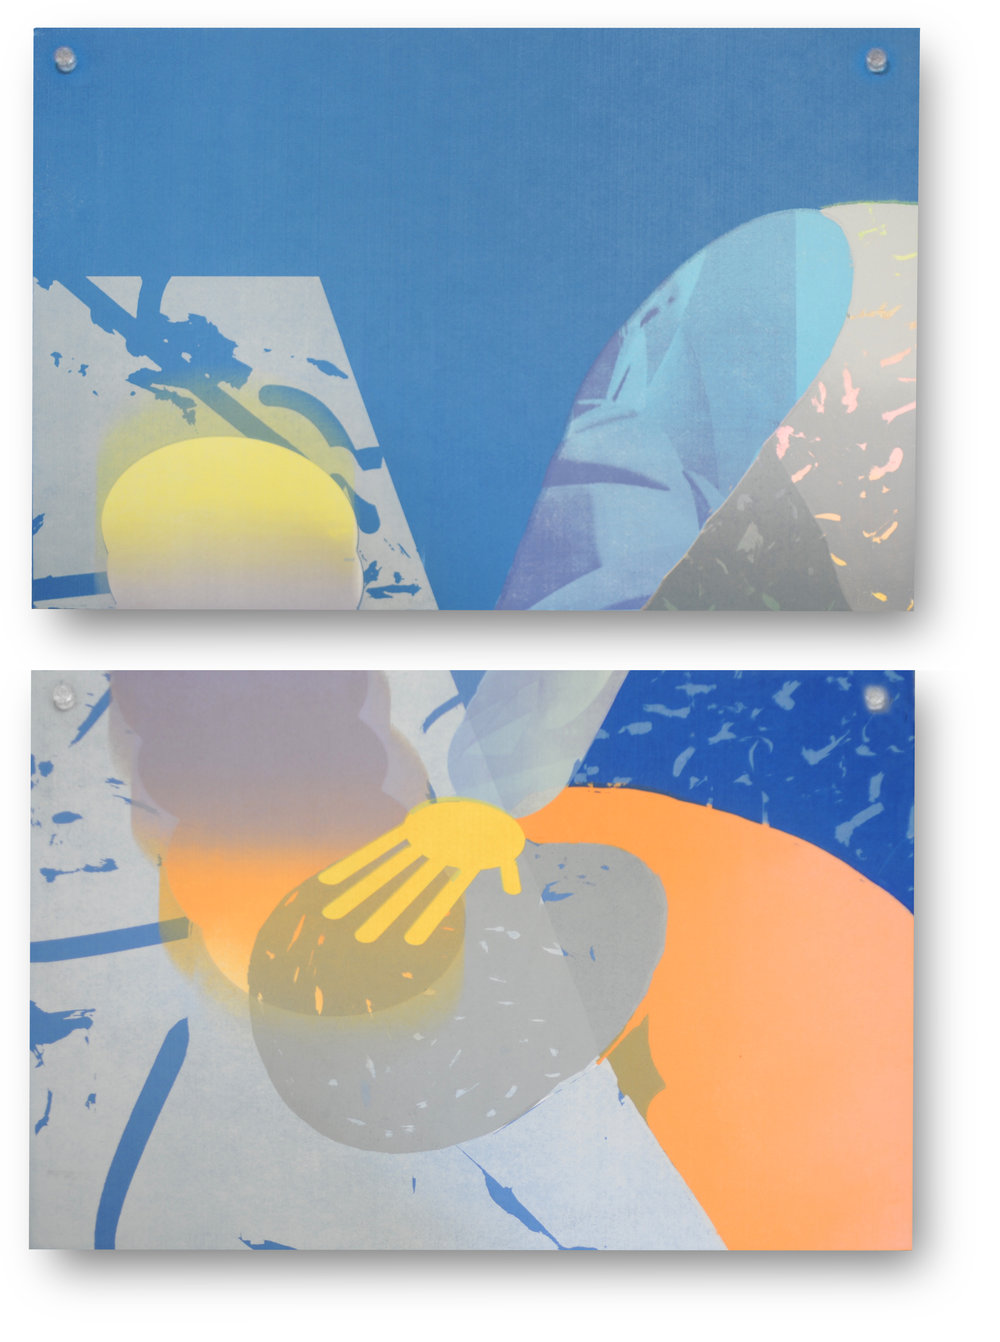 "Sonnenzimmer  (Nick Butcher and Nadine Nakanishi)    Stiff [.cava] & Swipe [.cava]   Screen print on punched synthetic felt,  modular acrylic peg system 24 x 36"" each 2017"